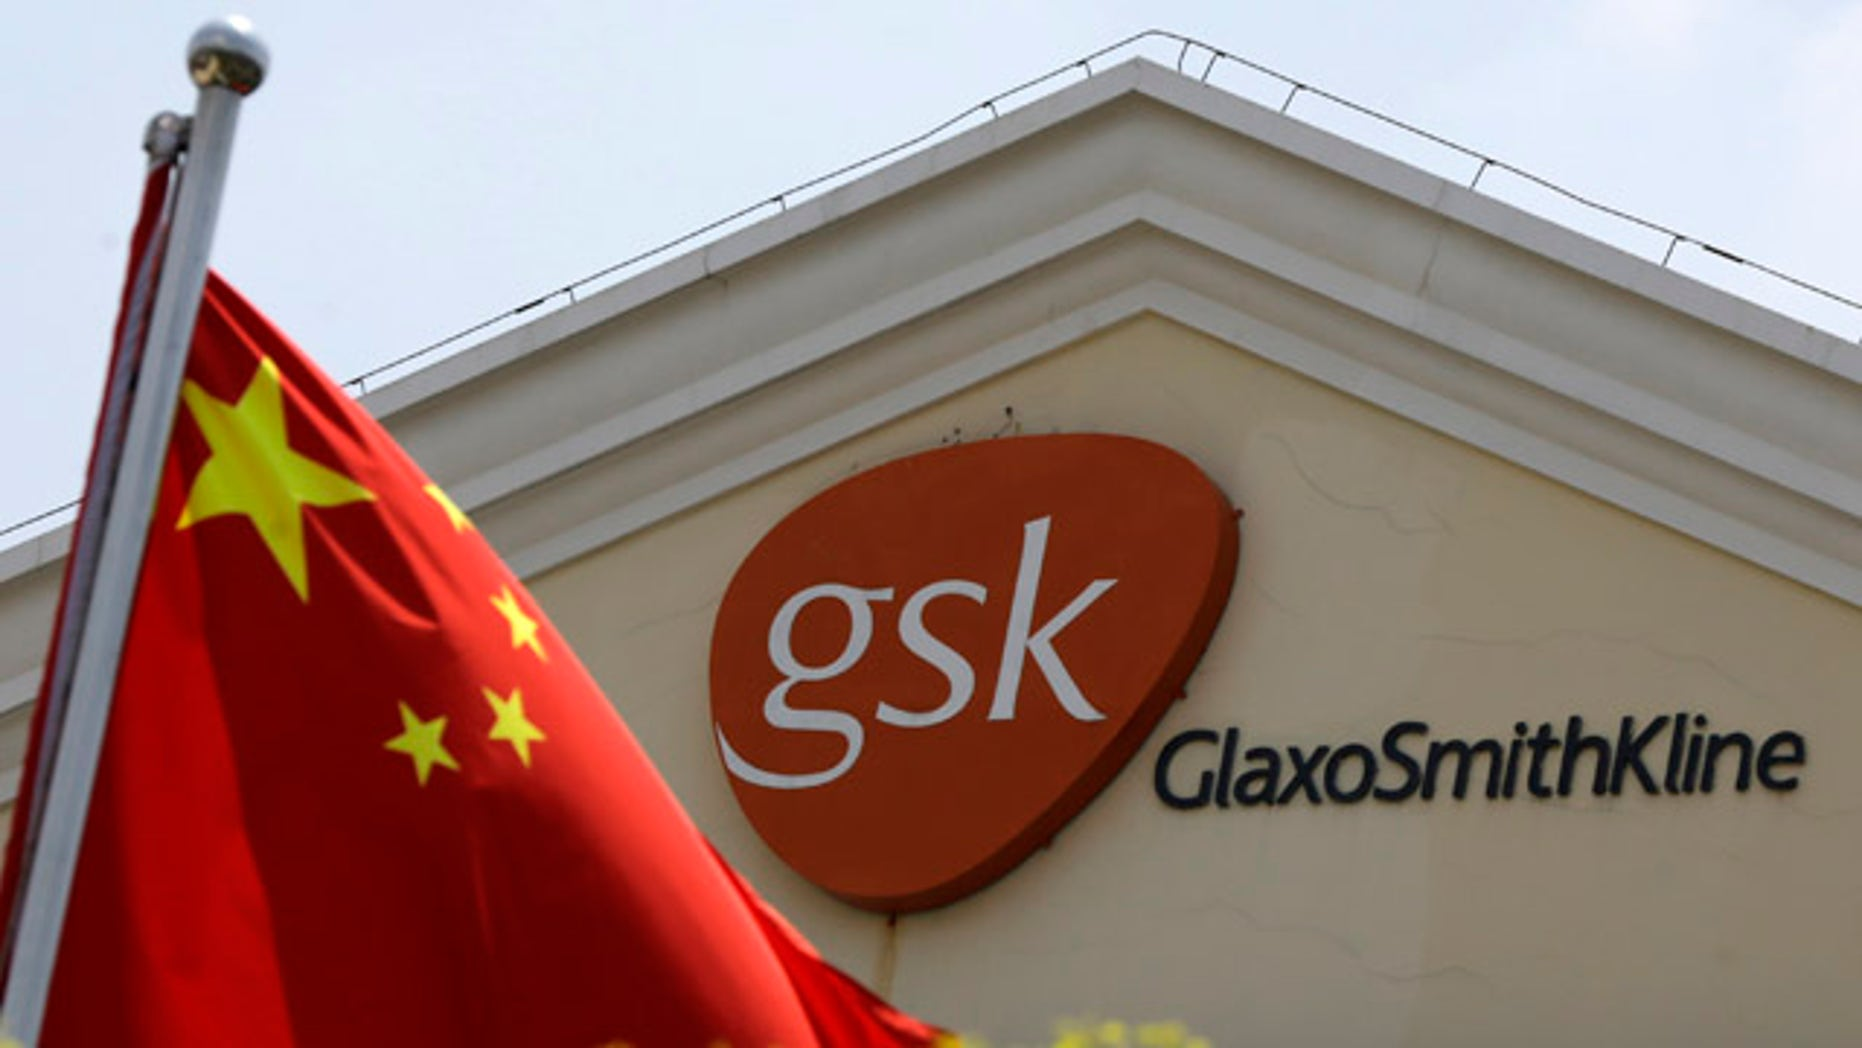 July 24, 2013: A Chinese flag is hoisted in front of a GlaxoSmithKline building in Shanghai, China. (AP Photo/Eugene Hoshiko, File)